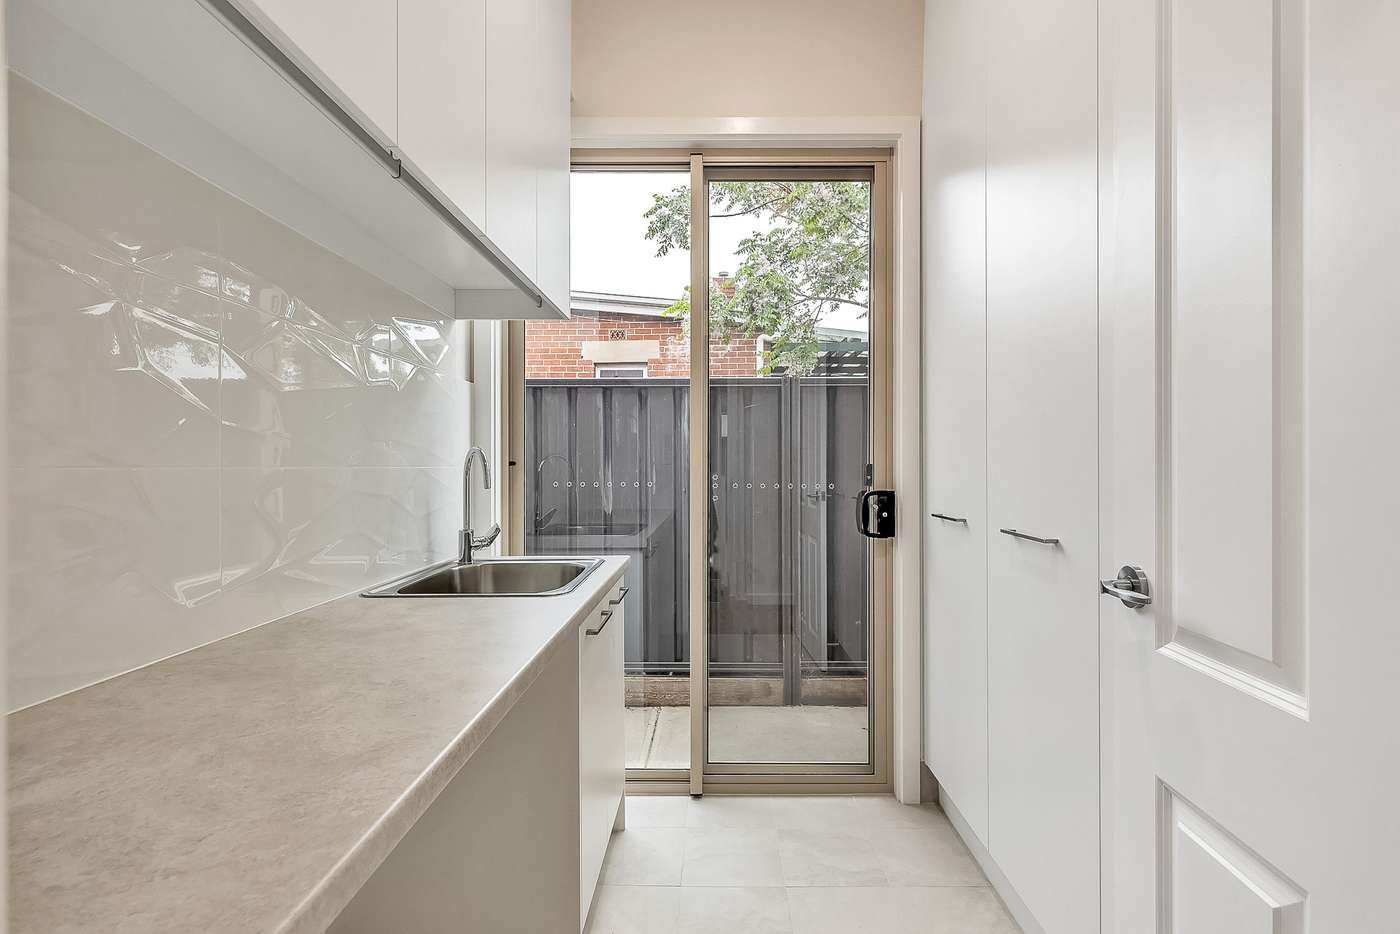 Sixth view of Homely house listing, 29 Tarragon Street, Mile End SA 5031